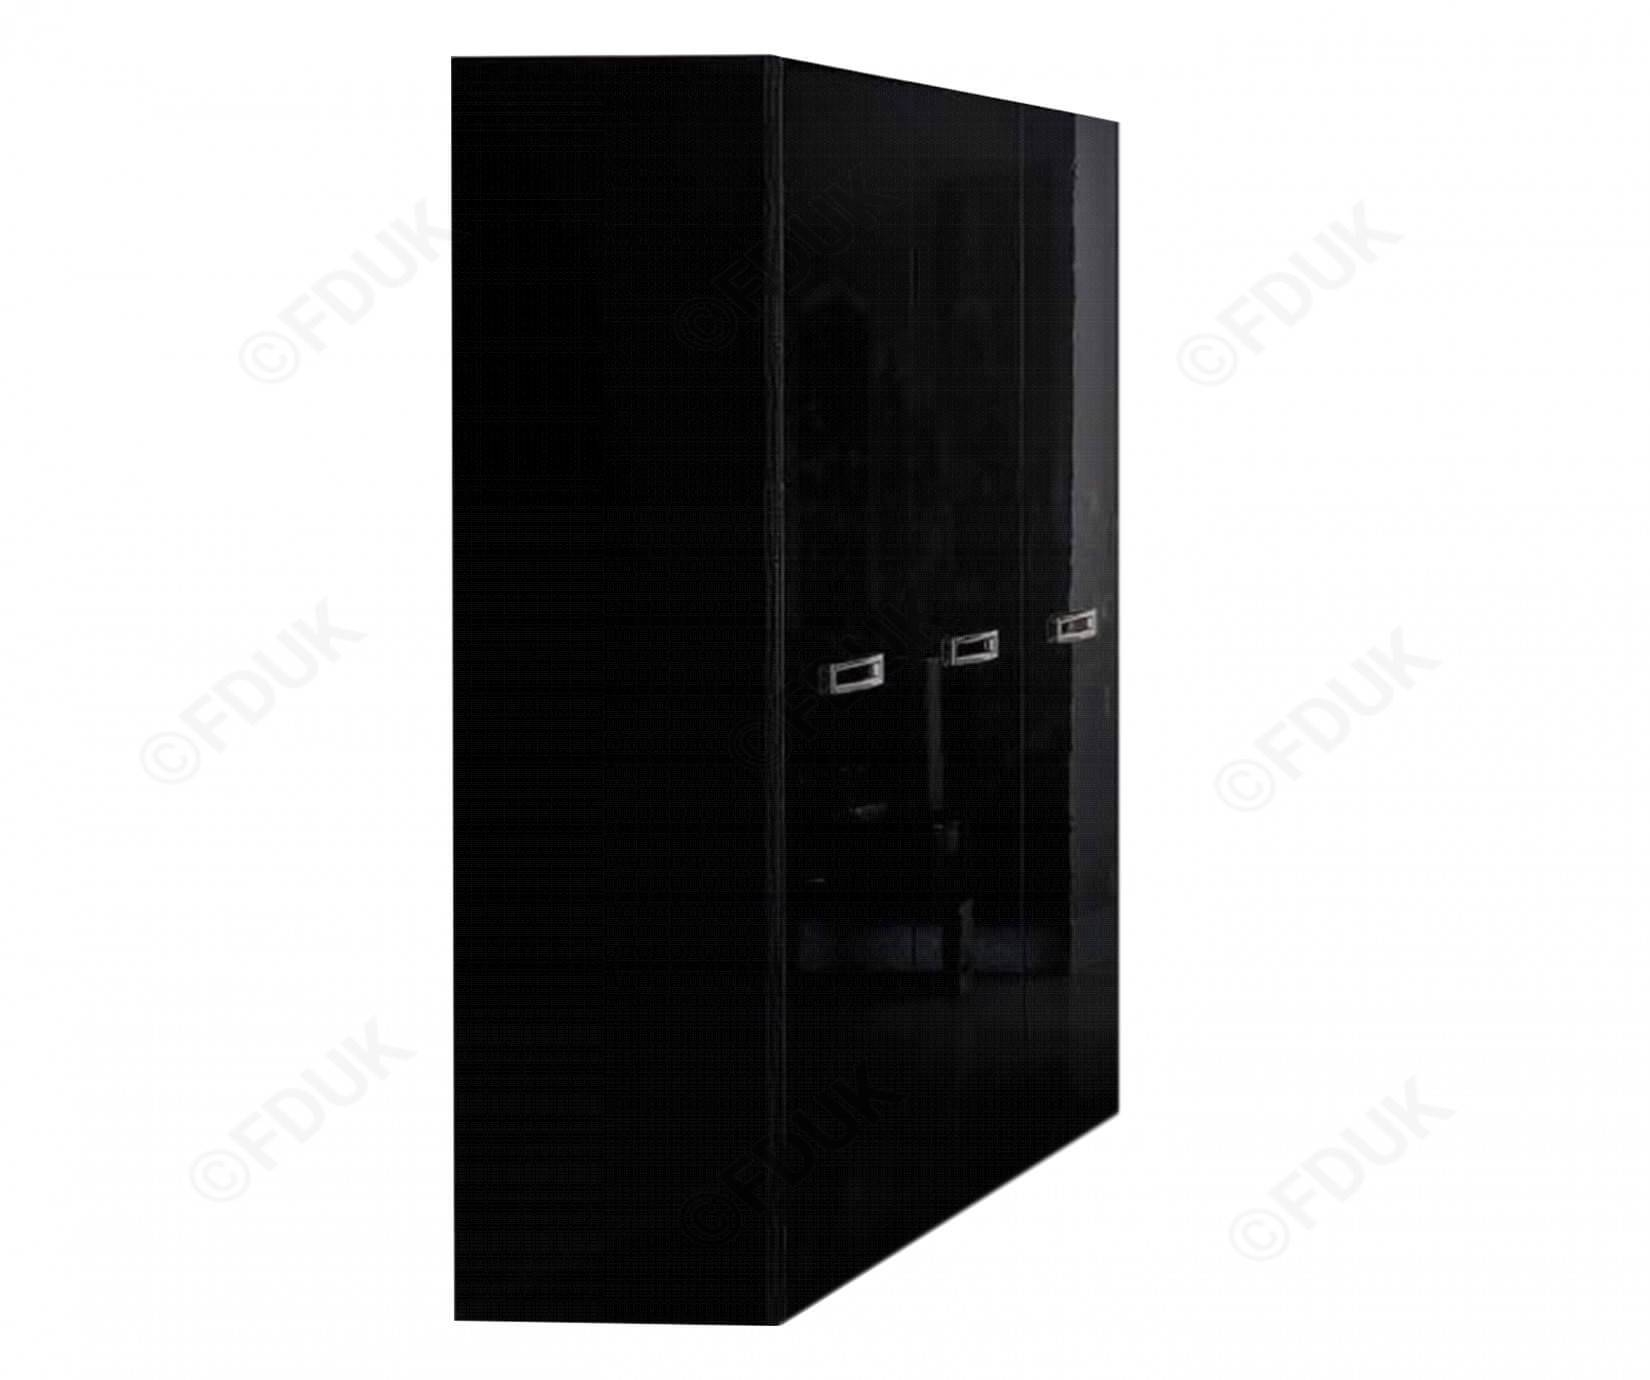 Camel Group La Star Magic | La Star Magic Black 3 Door Wardrobe within Black 3 Door Wardrobes (Image 5 of 15)